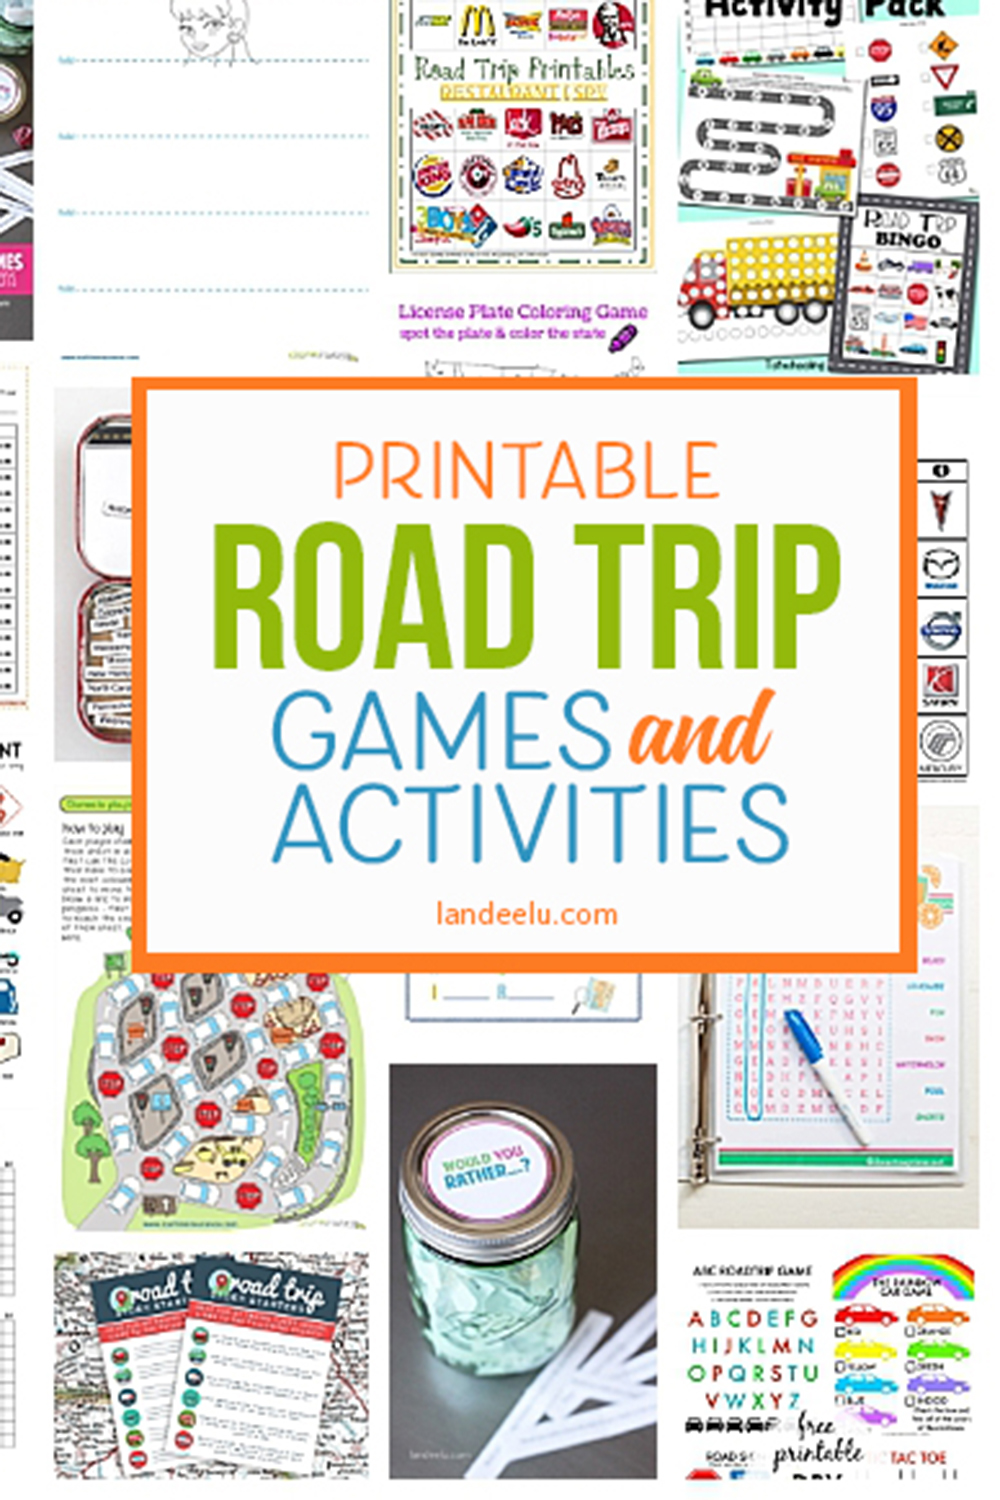 A TON of awesome printable car games for kids! So easy to print and entertain your family with these fun road trip games everyone will love! #cargamesforkids #cargameideas #printablegames #printableactivities #roatripideas